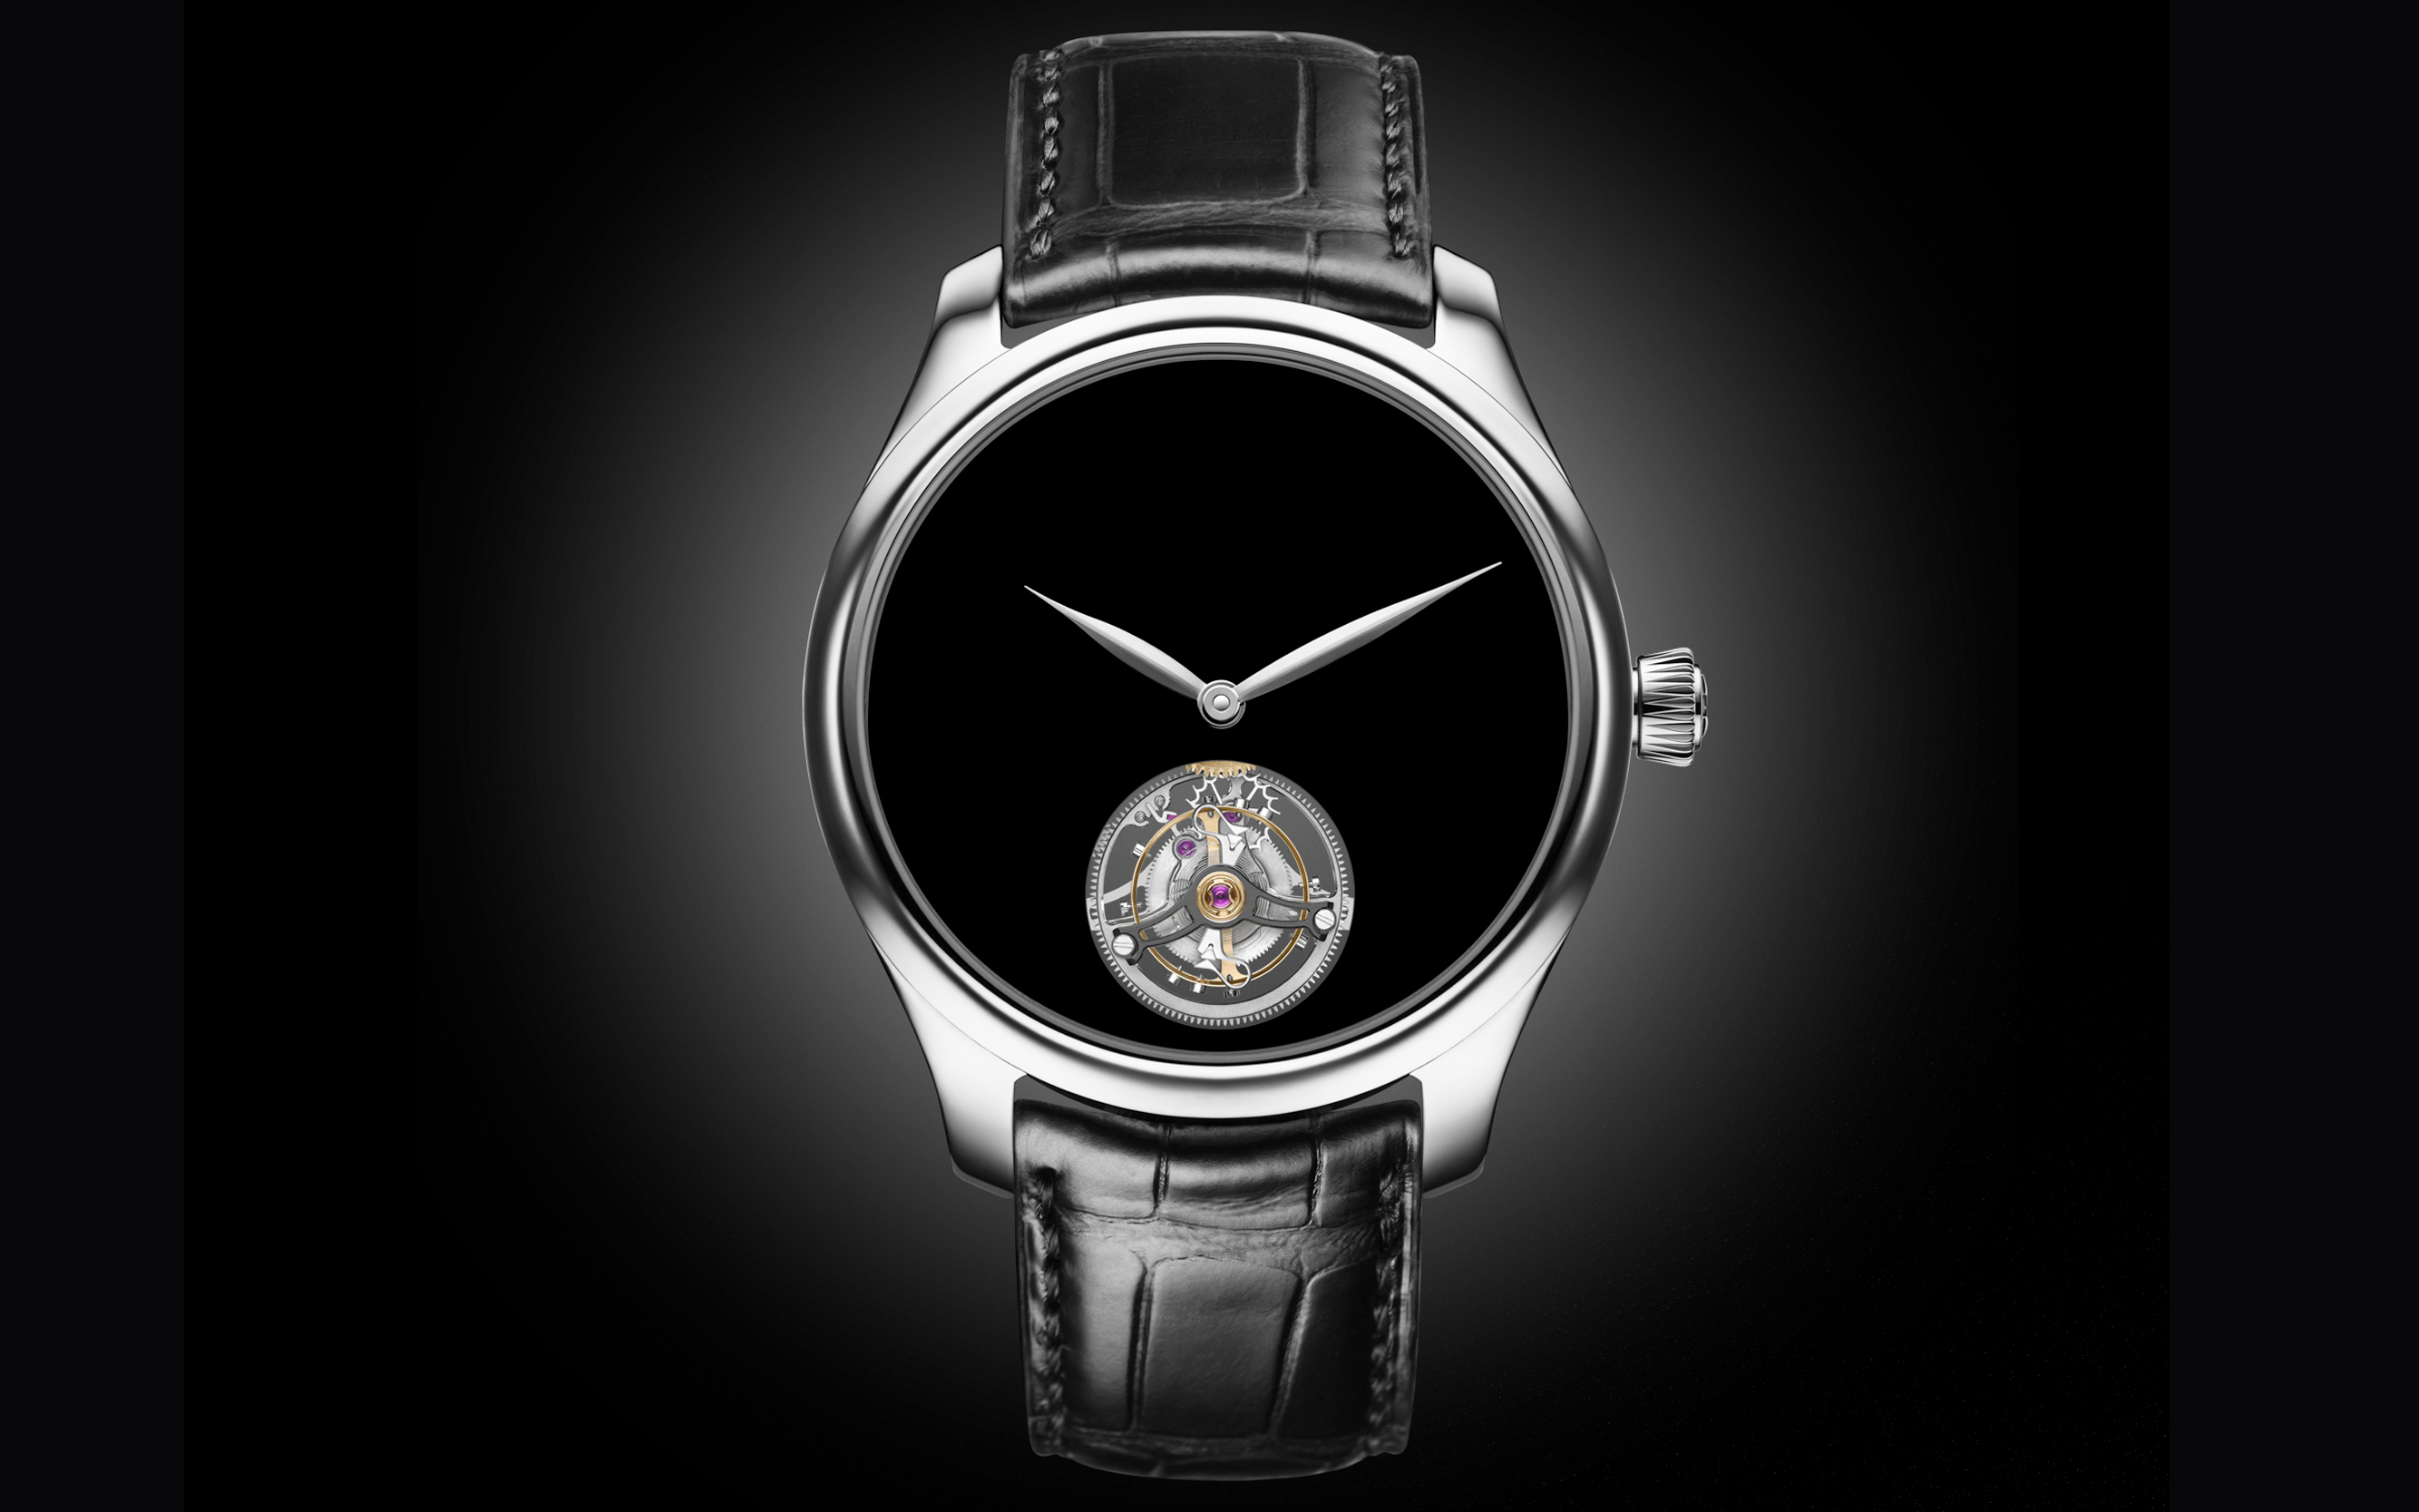 H. Moser & Cie., aire atemporal